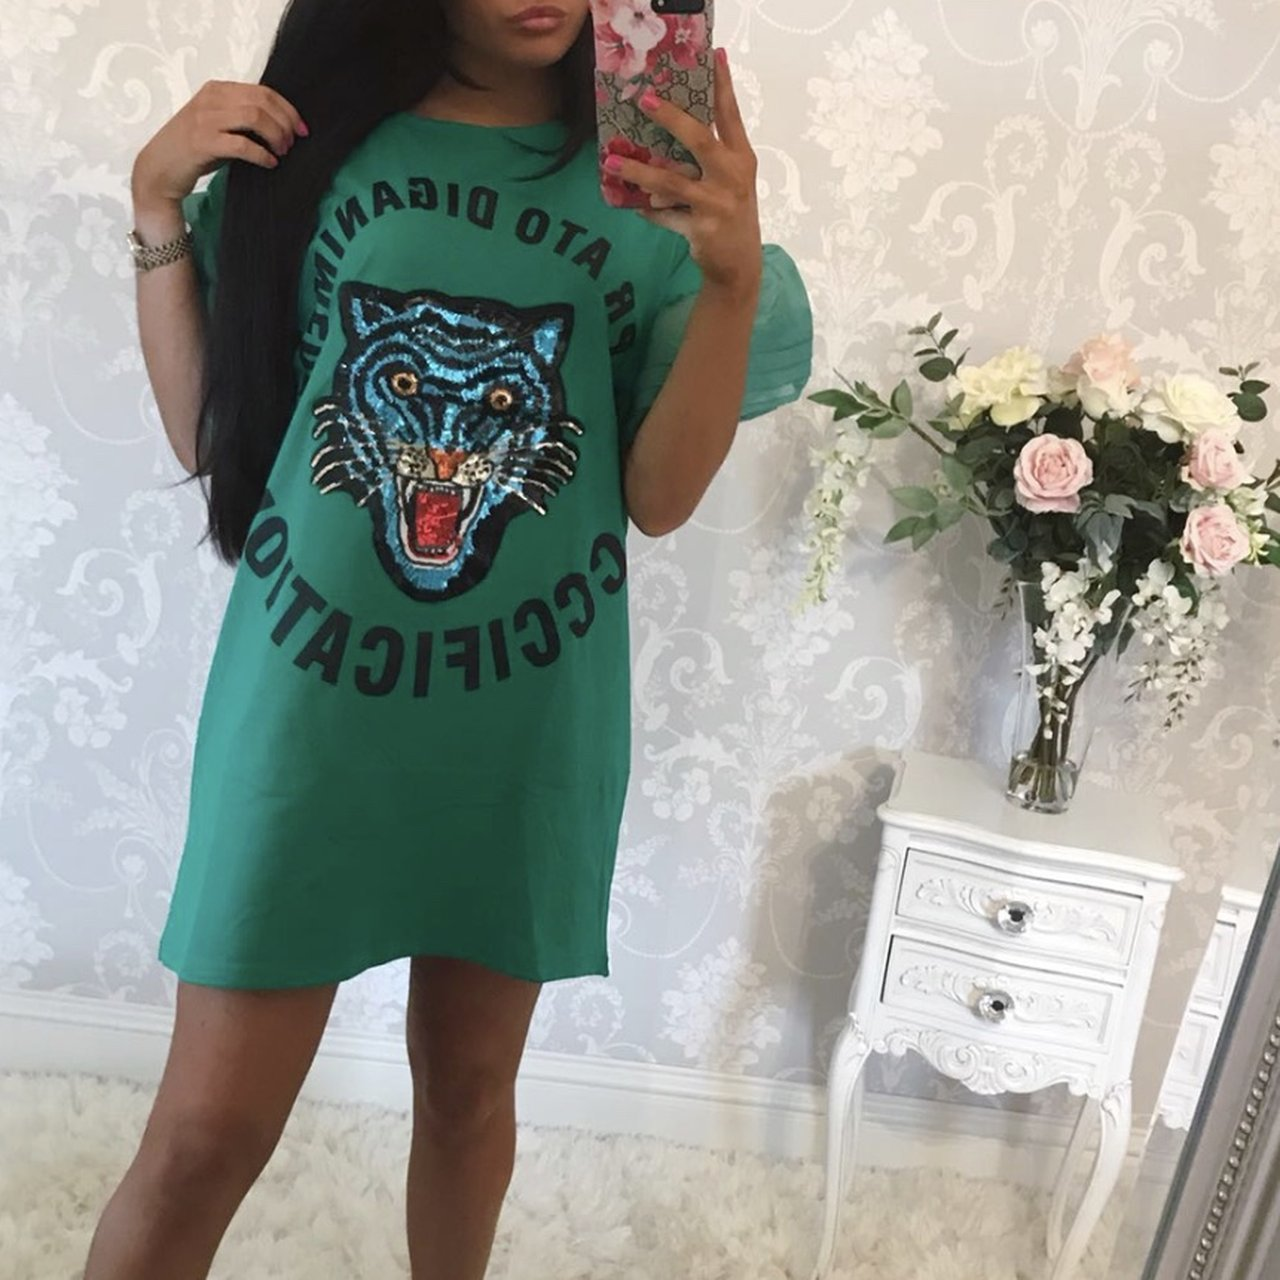 045006db7a5fdf Green tiger t shirt dress still with tags never worn